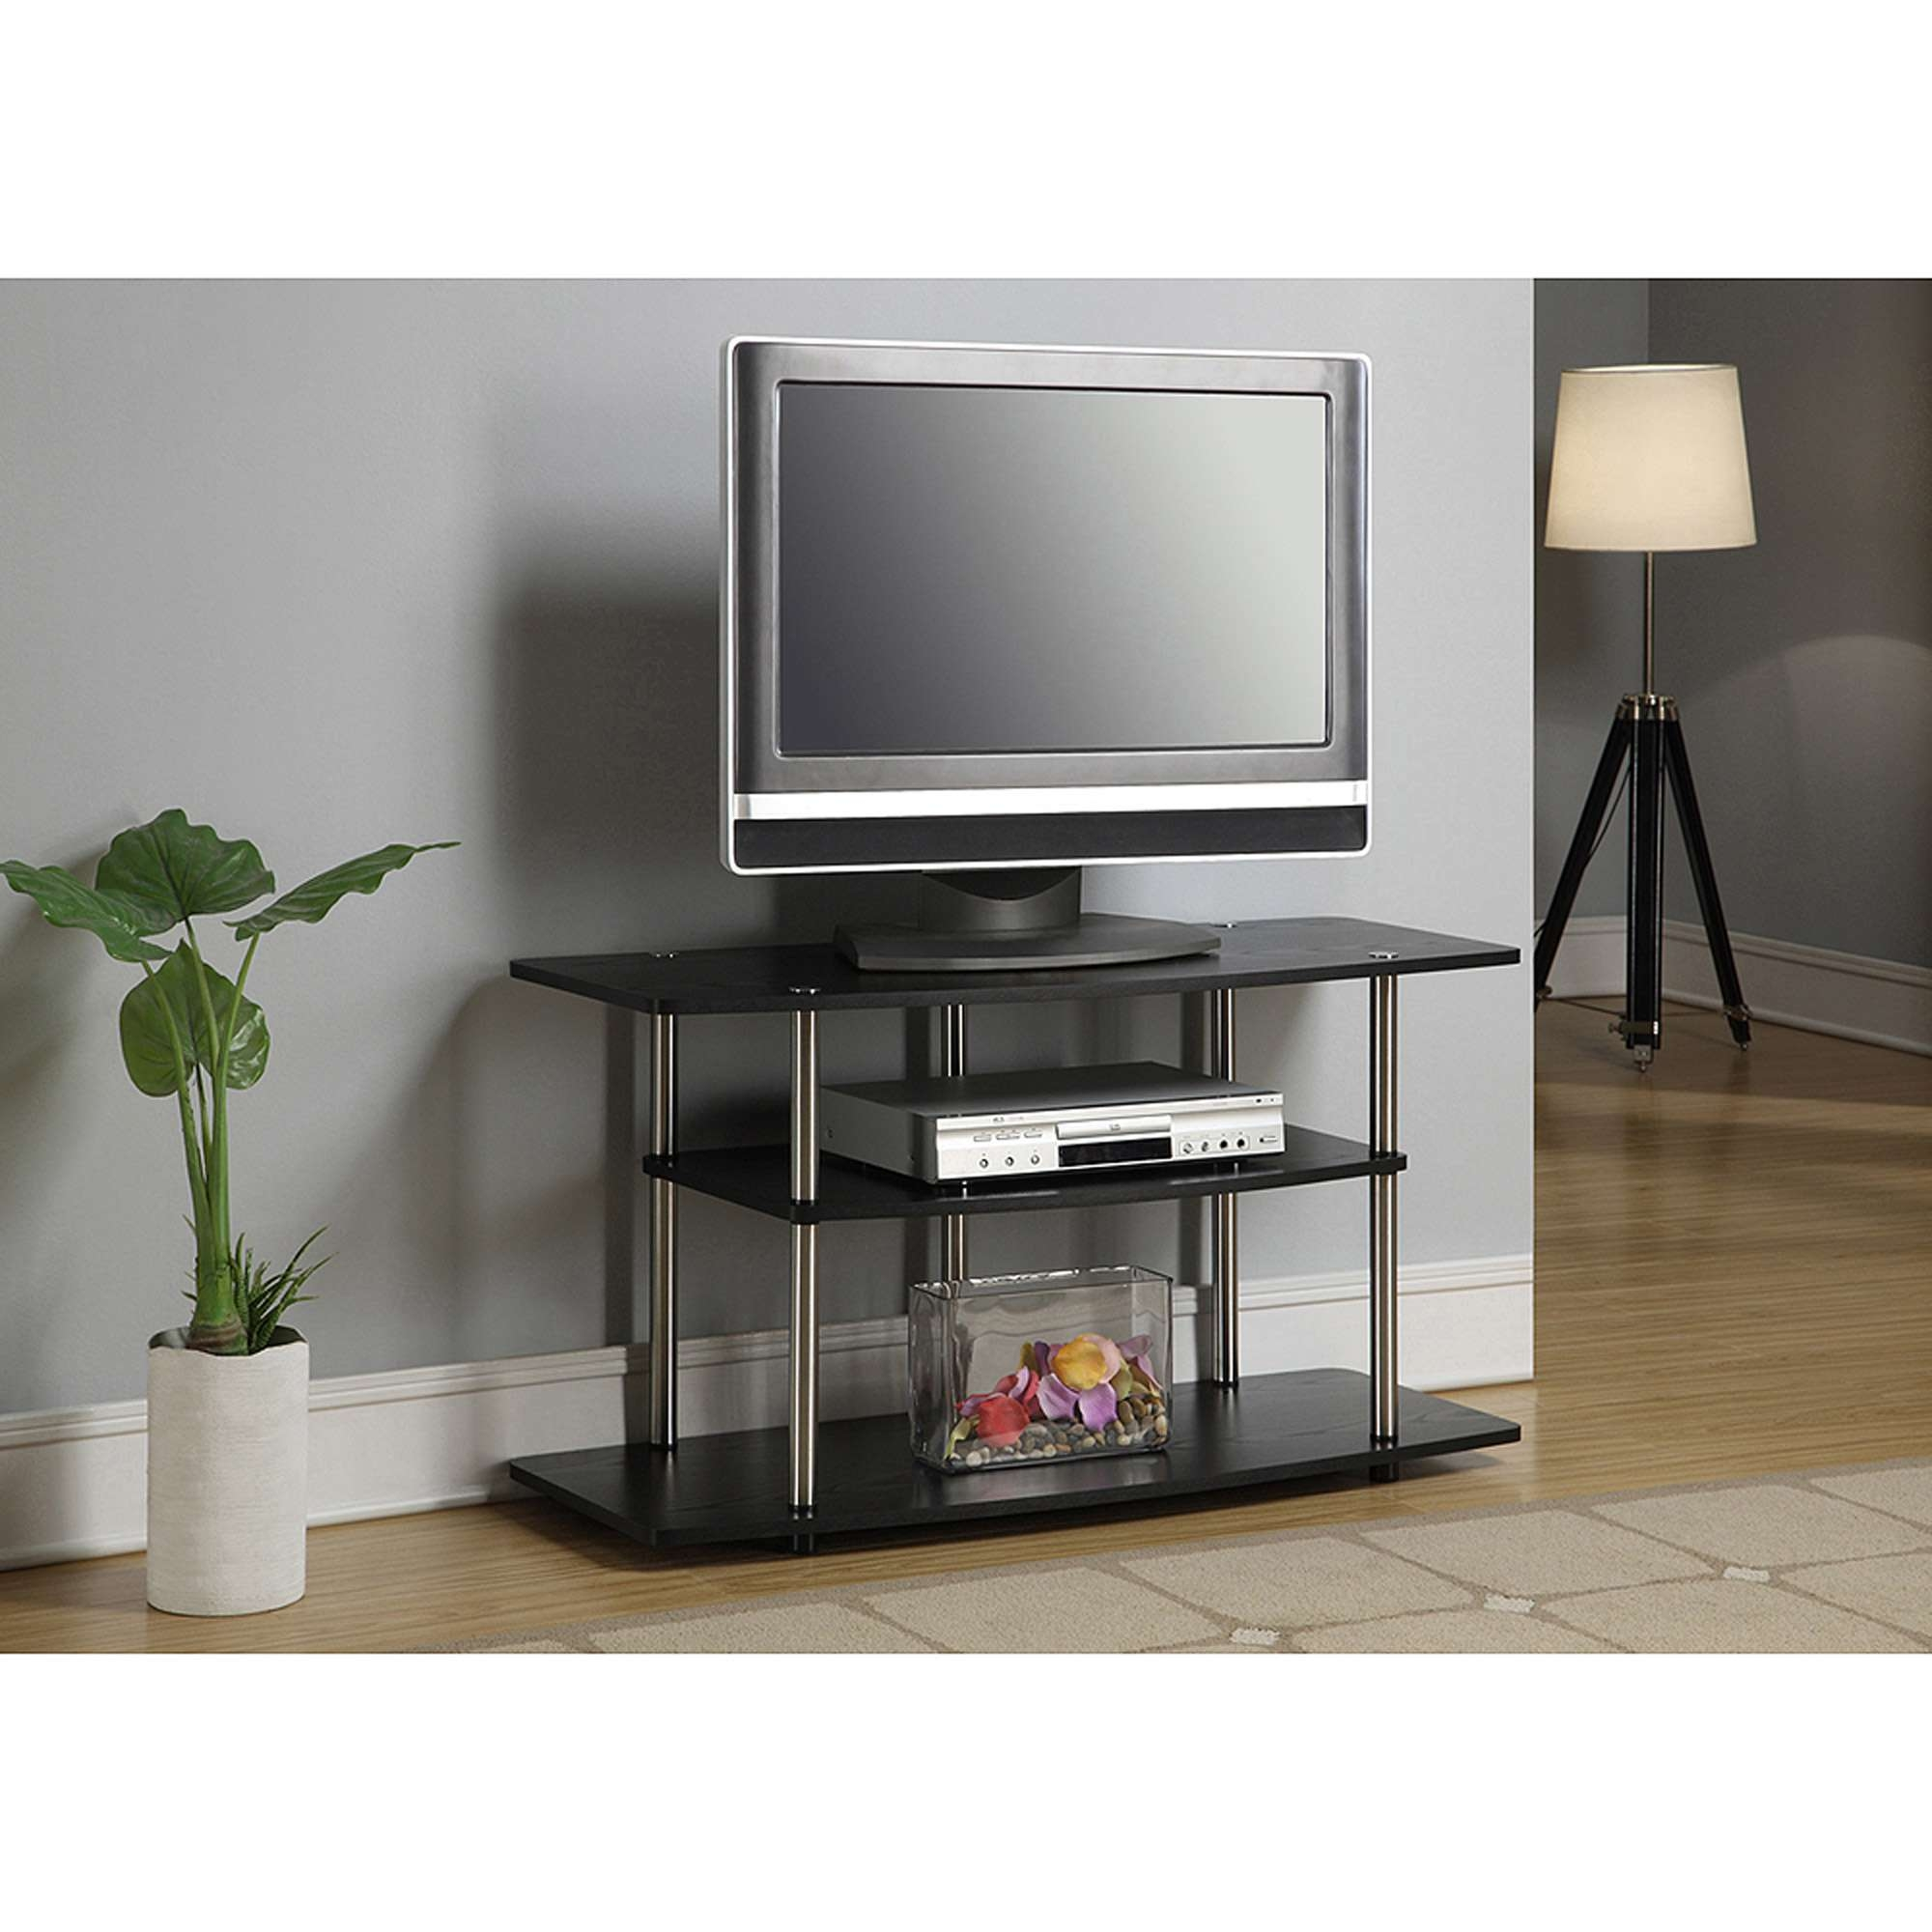 Tv Stands : 8de3714e6f0e 1 Baby Proof Tv Stand How To Standbaby Within Baby Proof Contemporary Tv Cabinets (View 6 of 20)